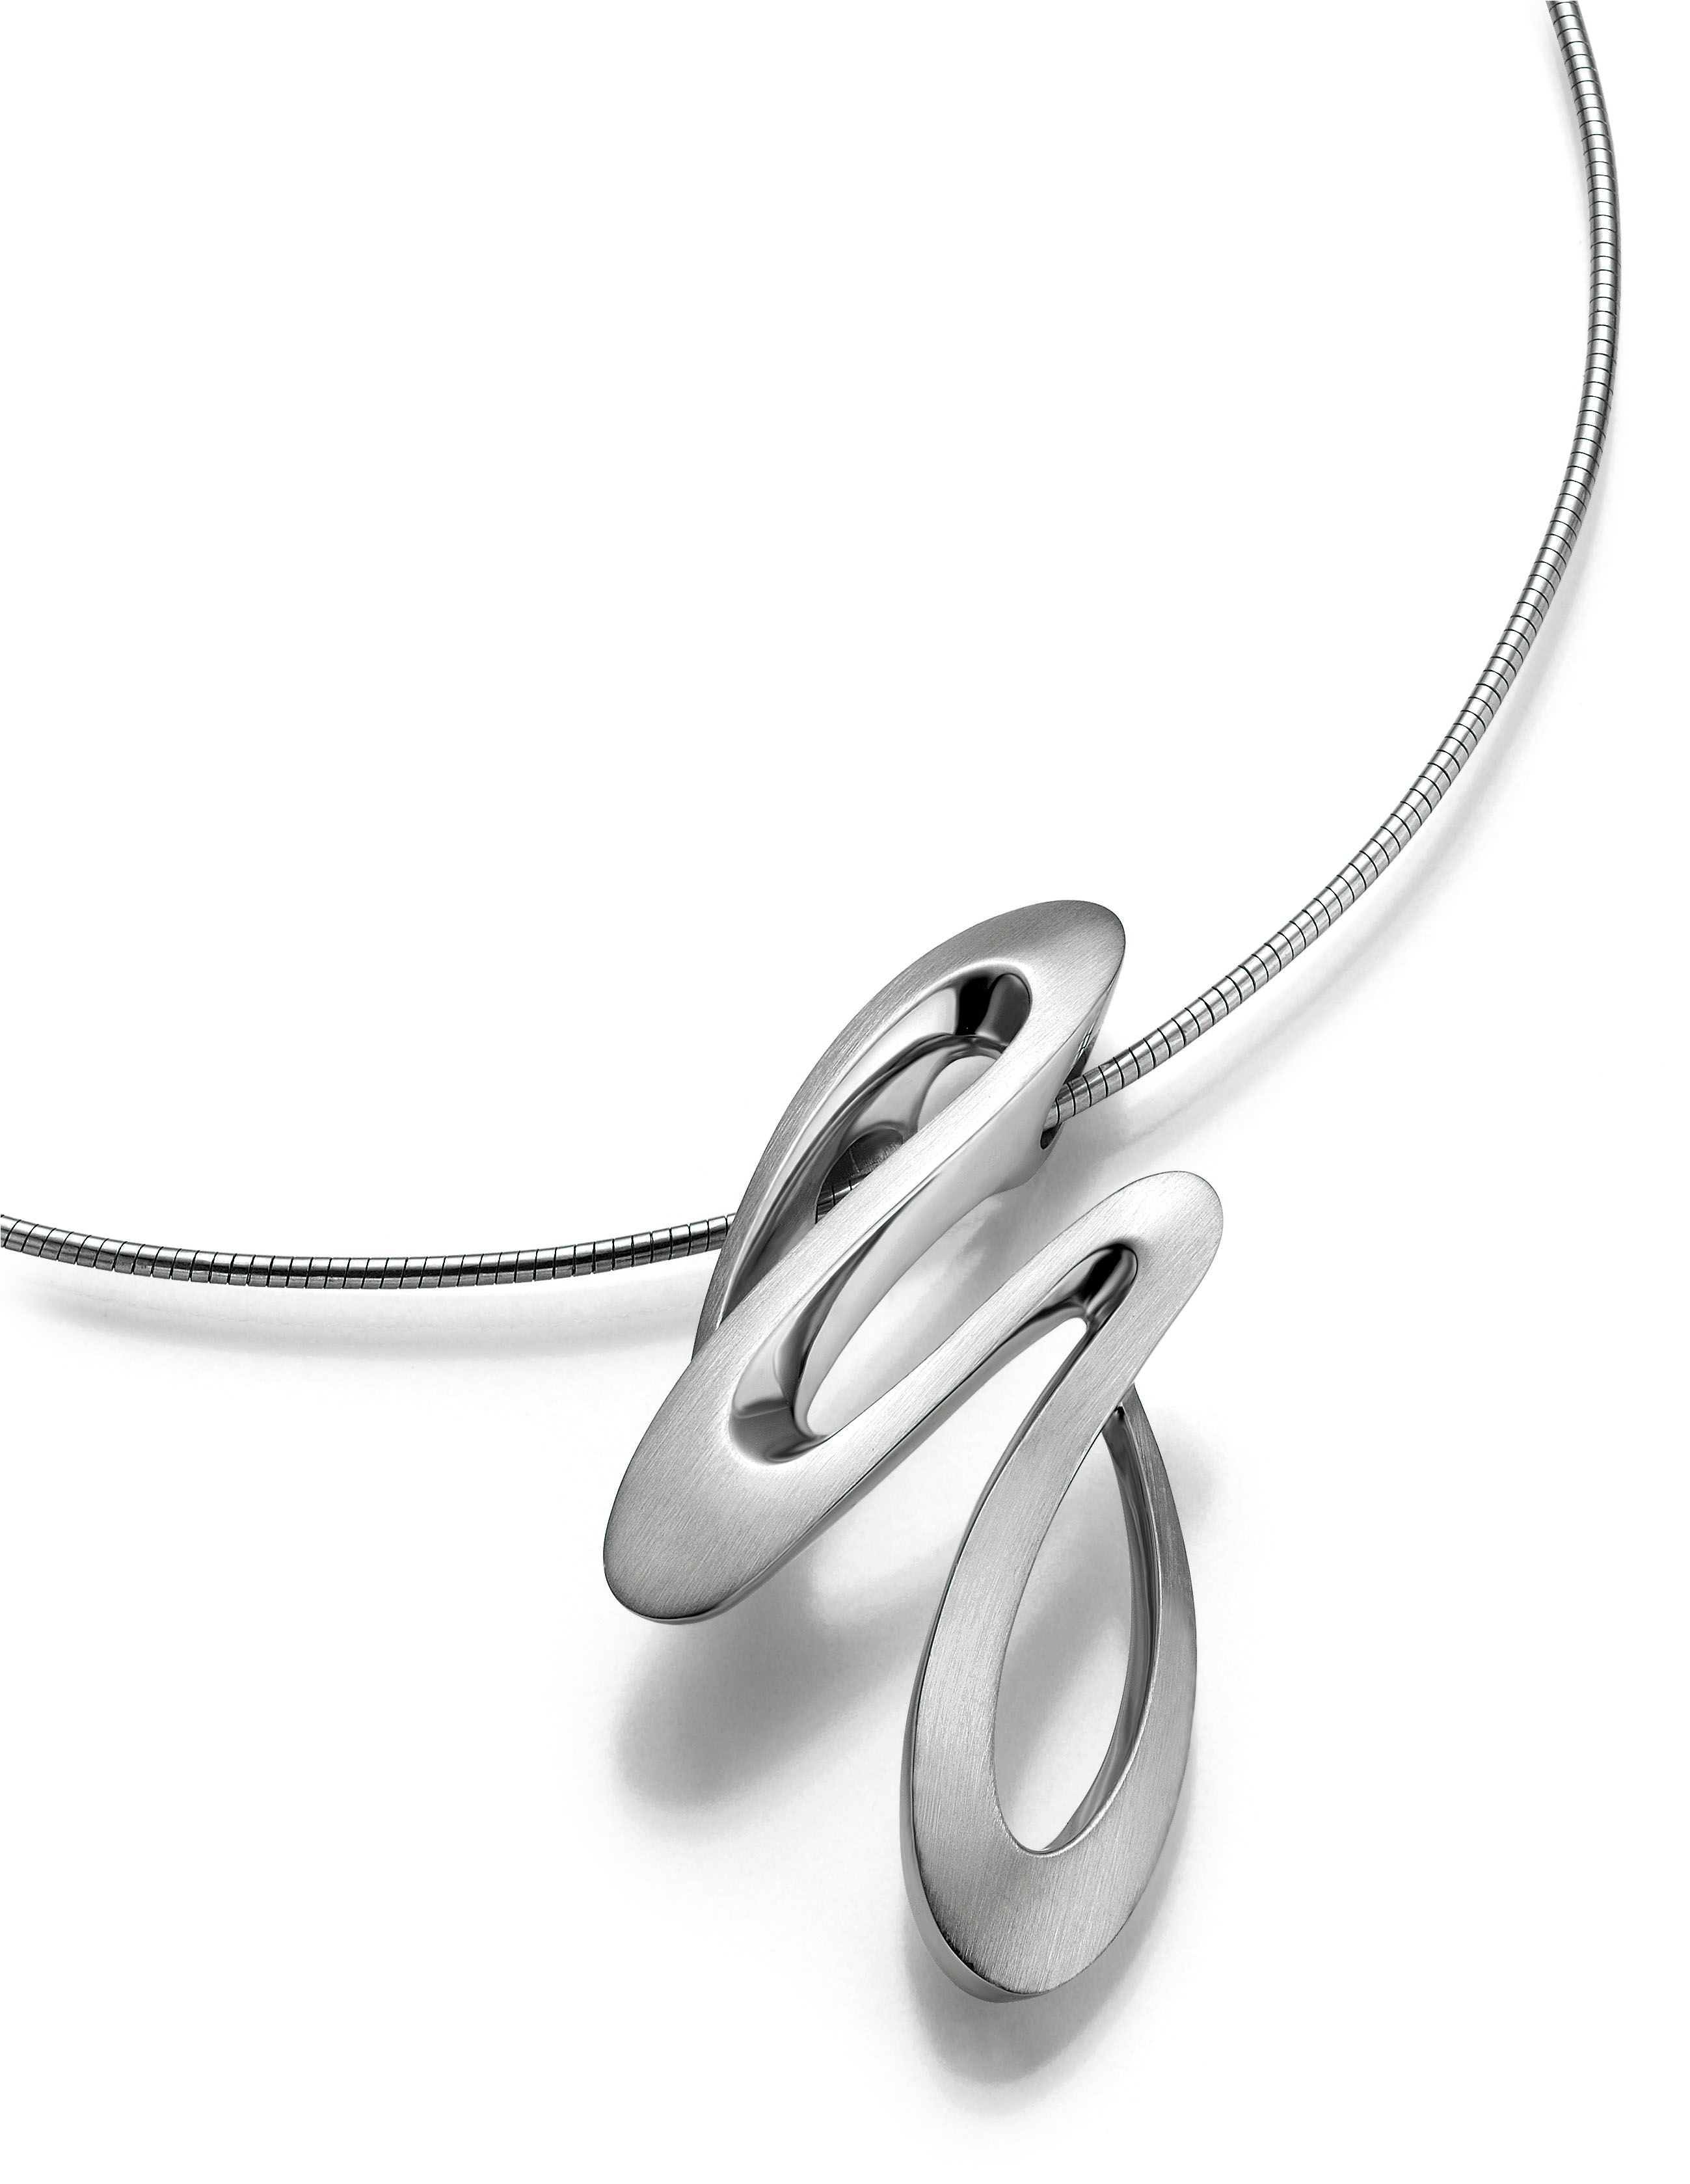 Breuning Sterling Silver Pendant Necklace